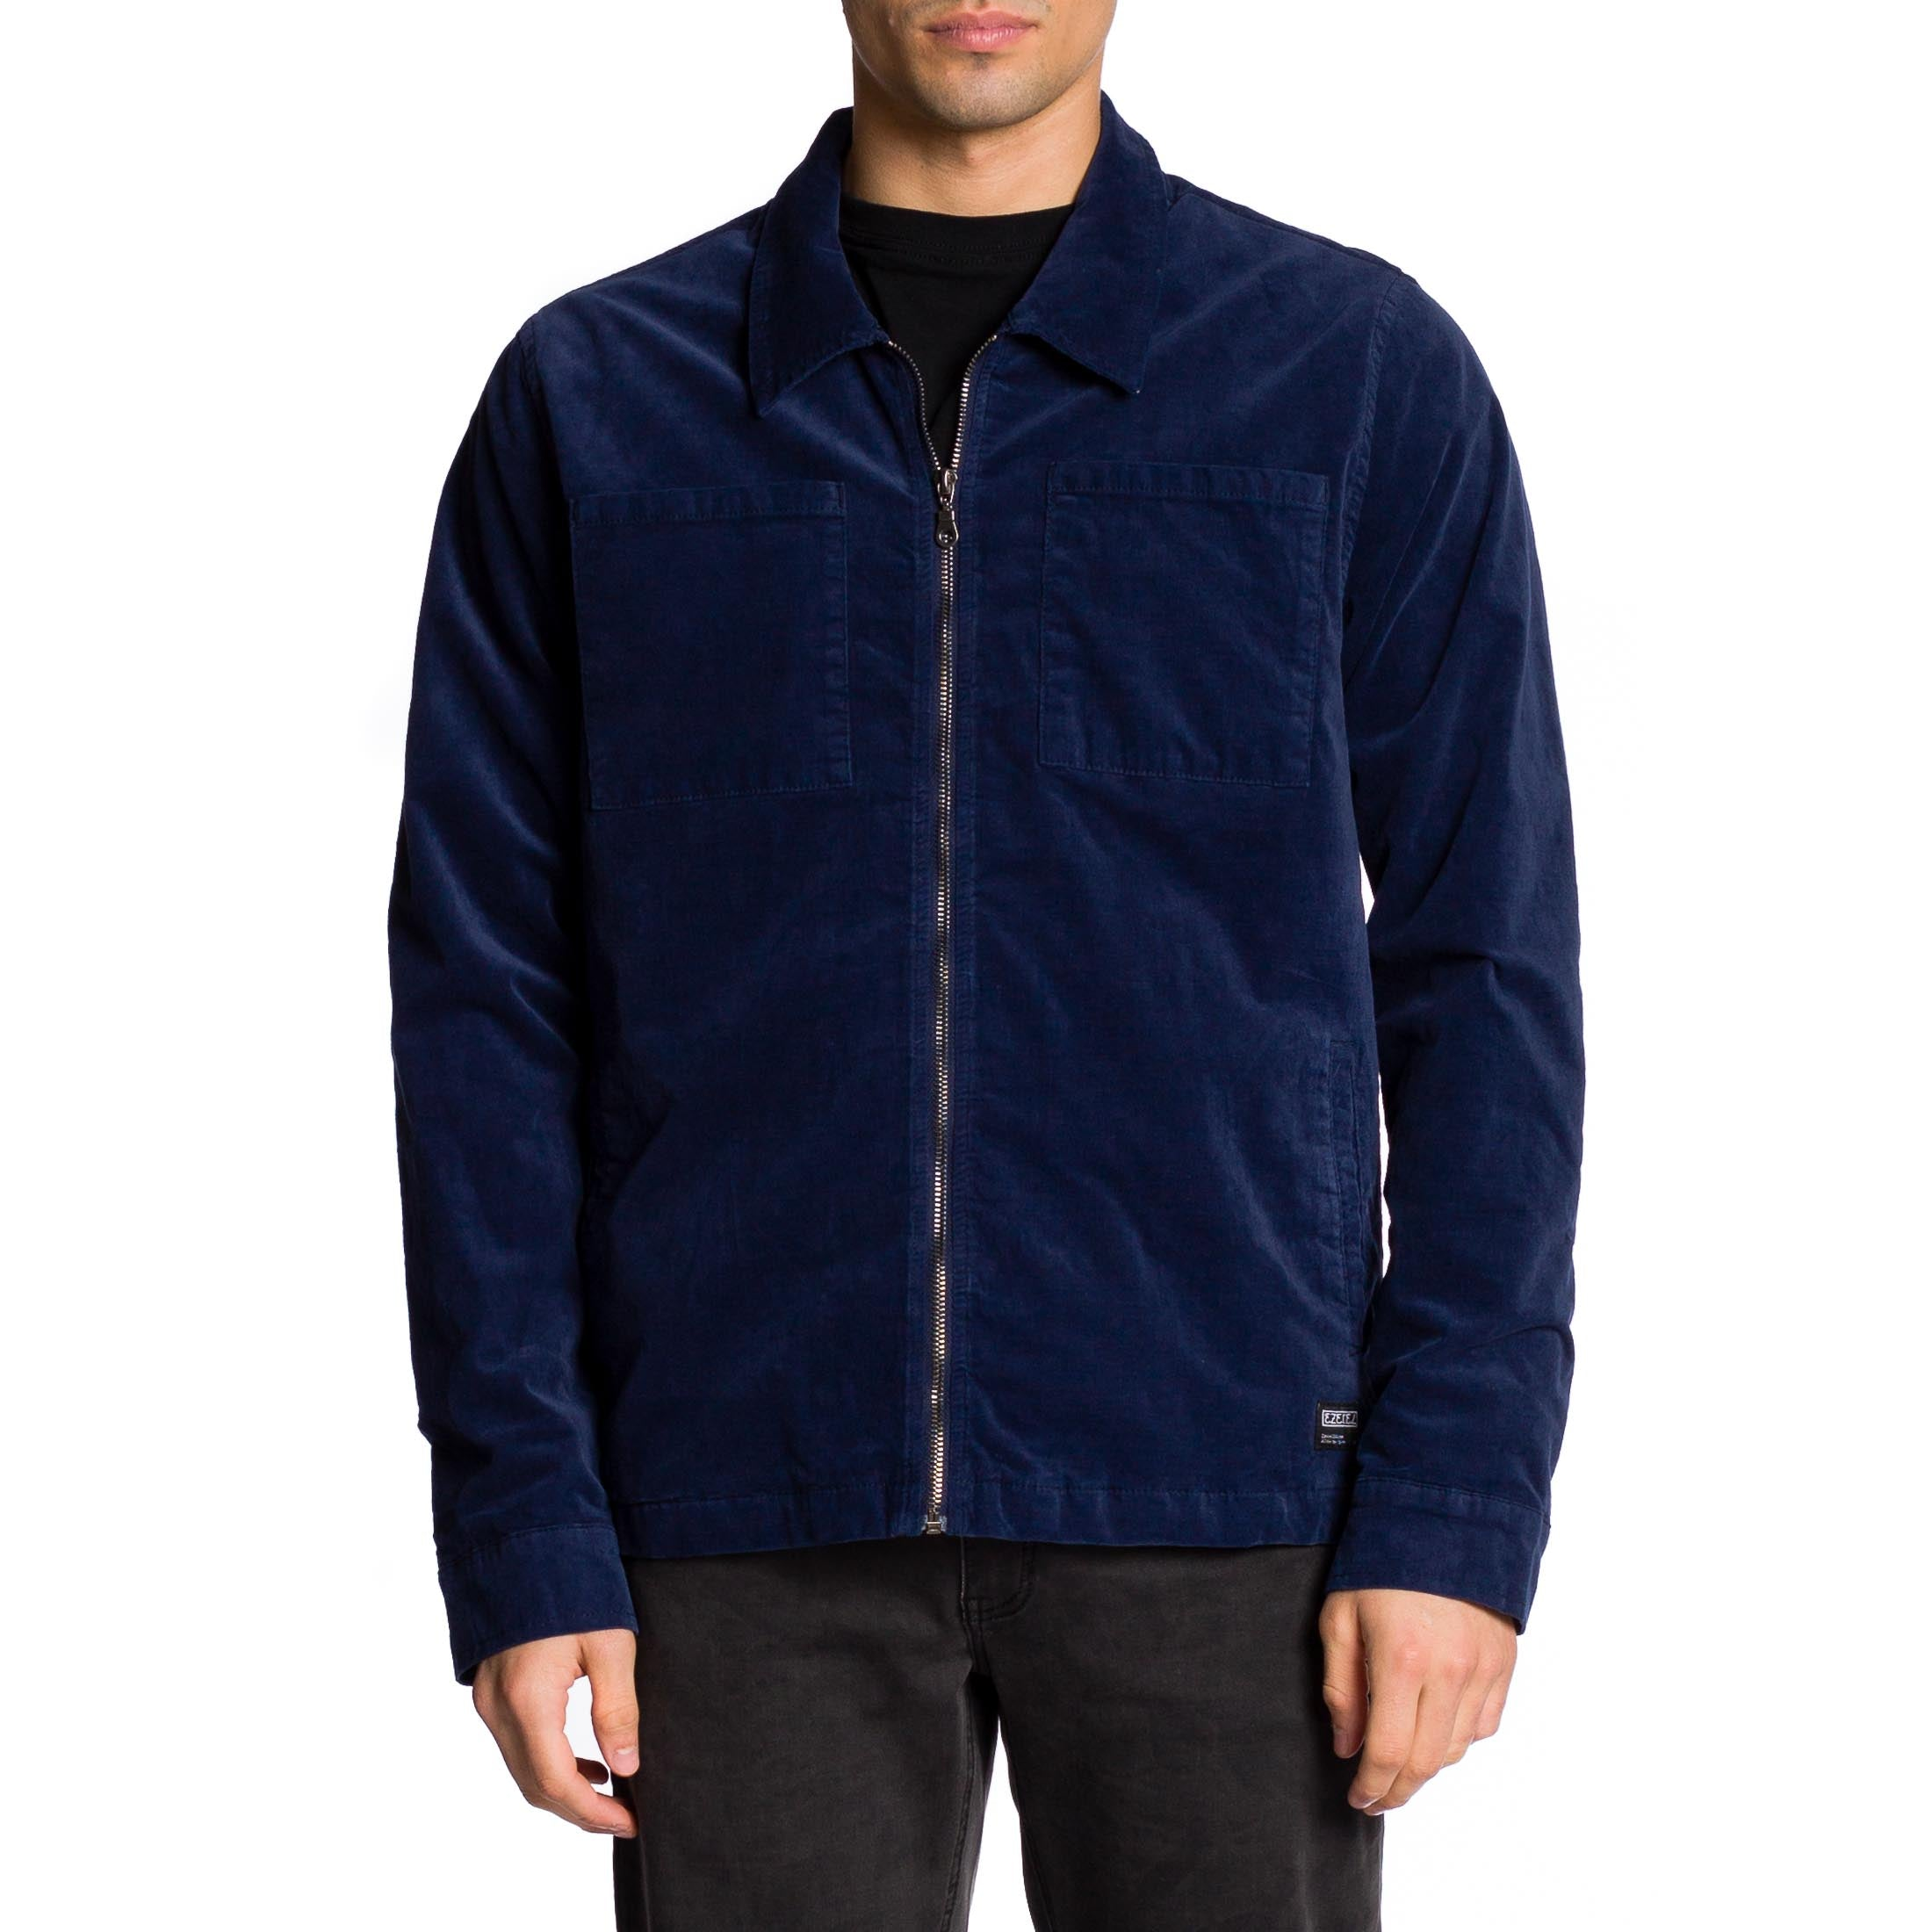 Morrison Jacket - Navy - Ezekiel Clothing